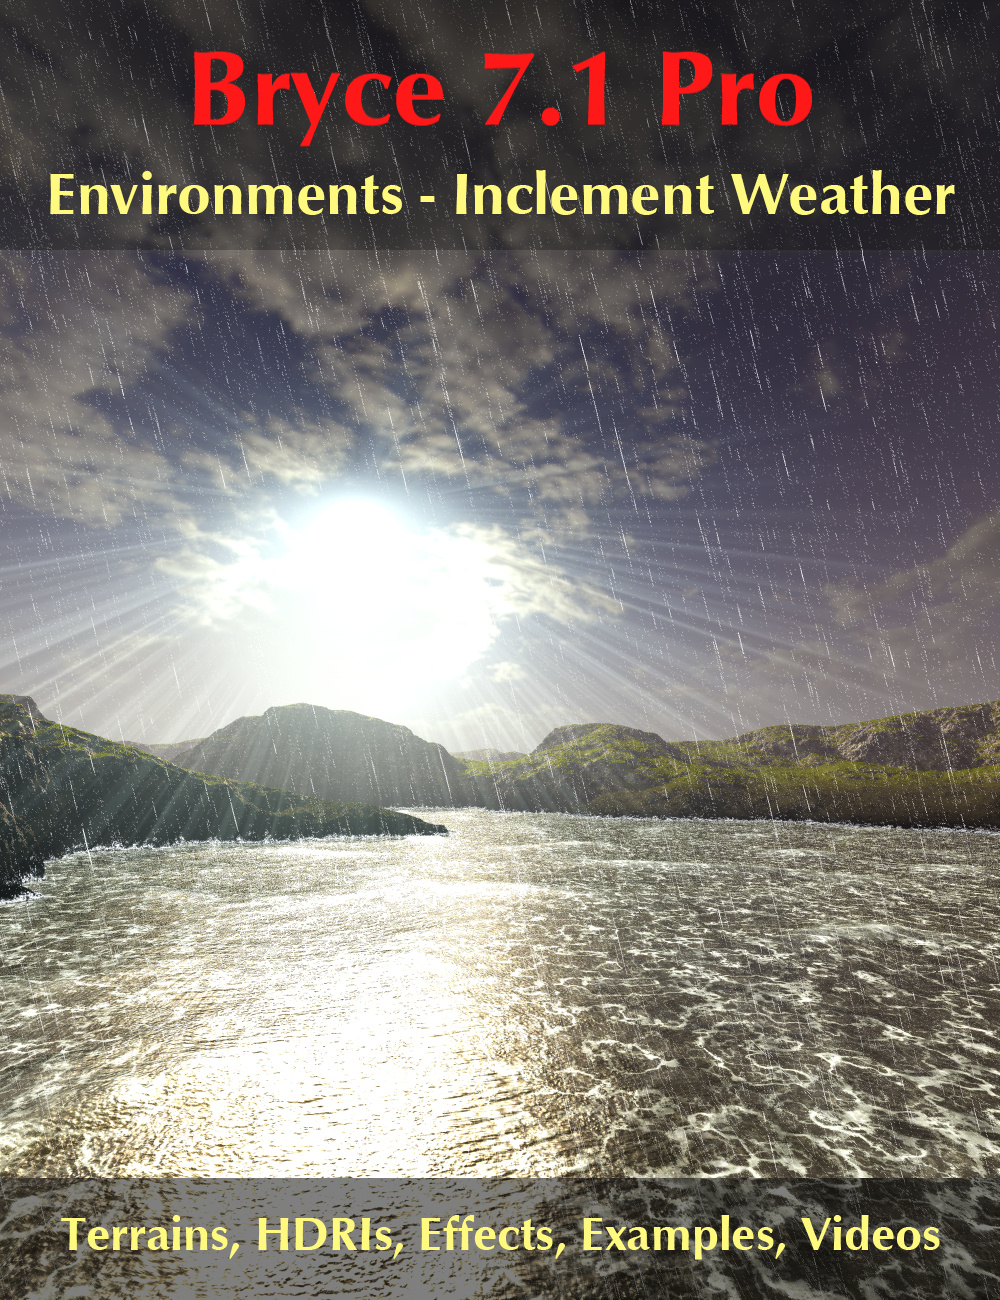 Bryce 7.1 Pro - Environments - Inclement Weather by: David BrinnenHoro, 3D Models by Daz 3D